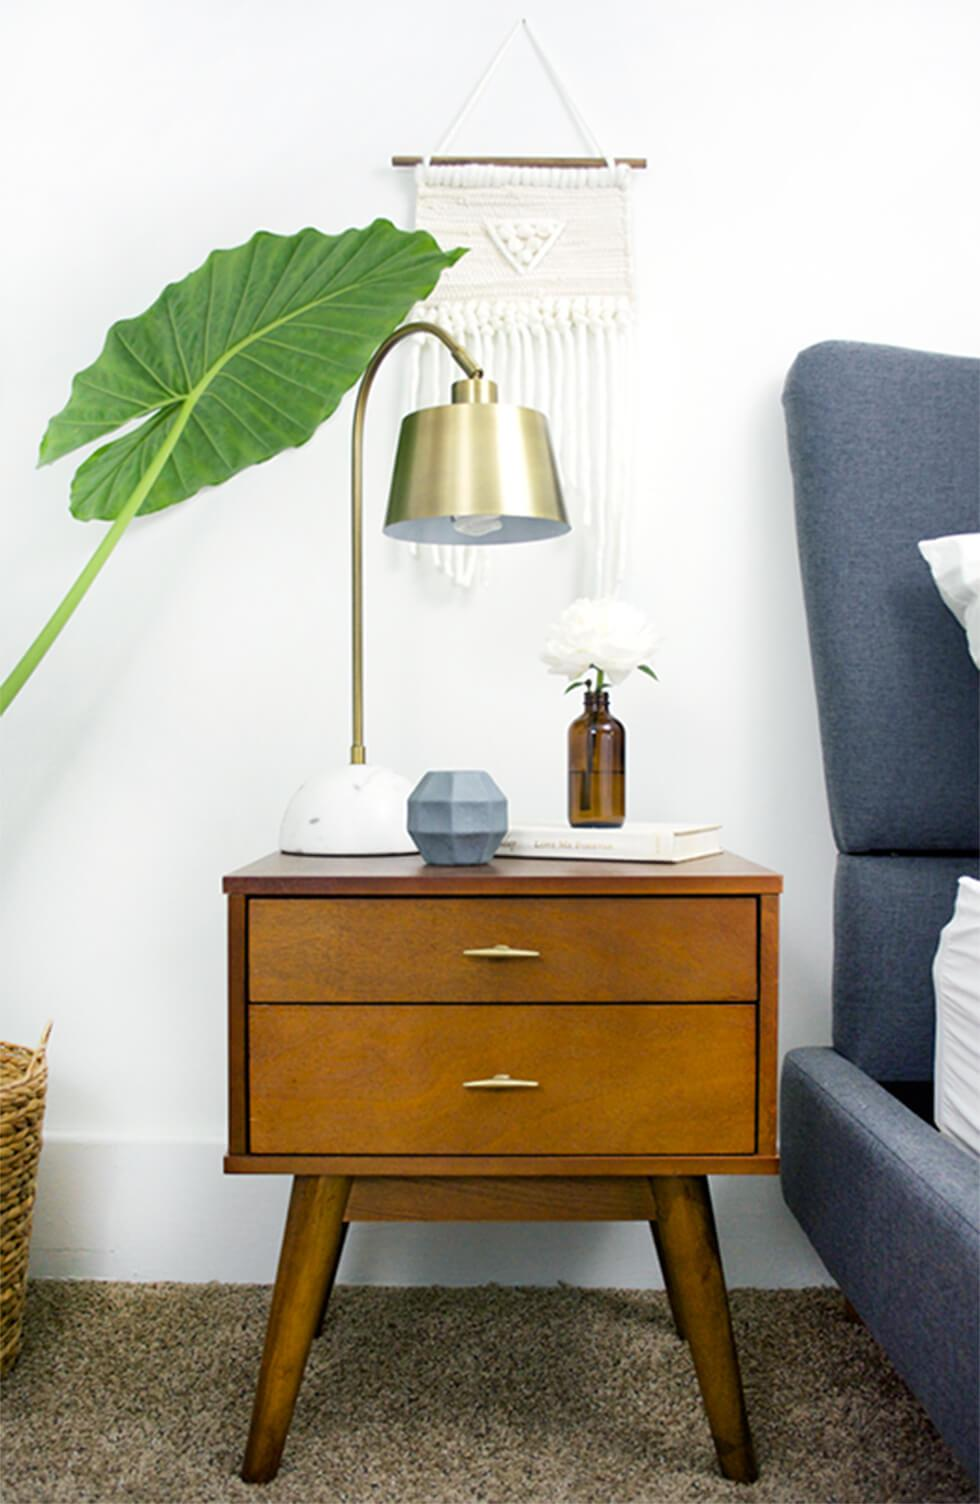 Bedside wooden chest of drawers with splayed legs and a brass lamp